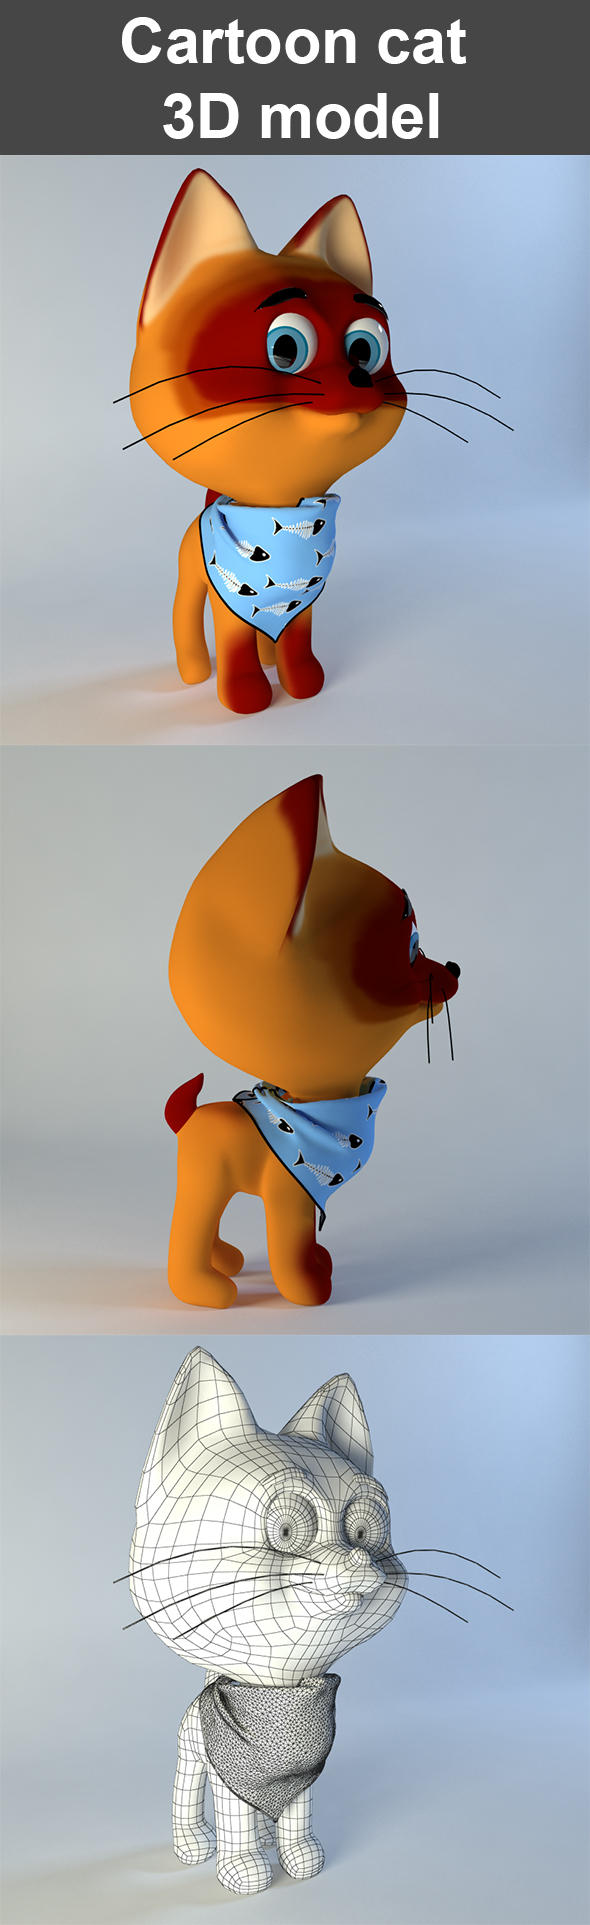 Kitten from cartoon 3D model - 3DOcean Item for Sale